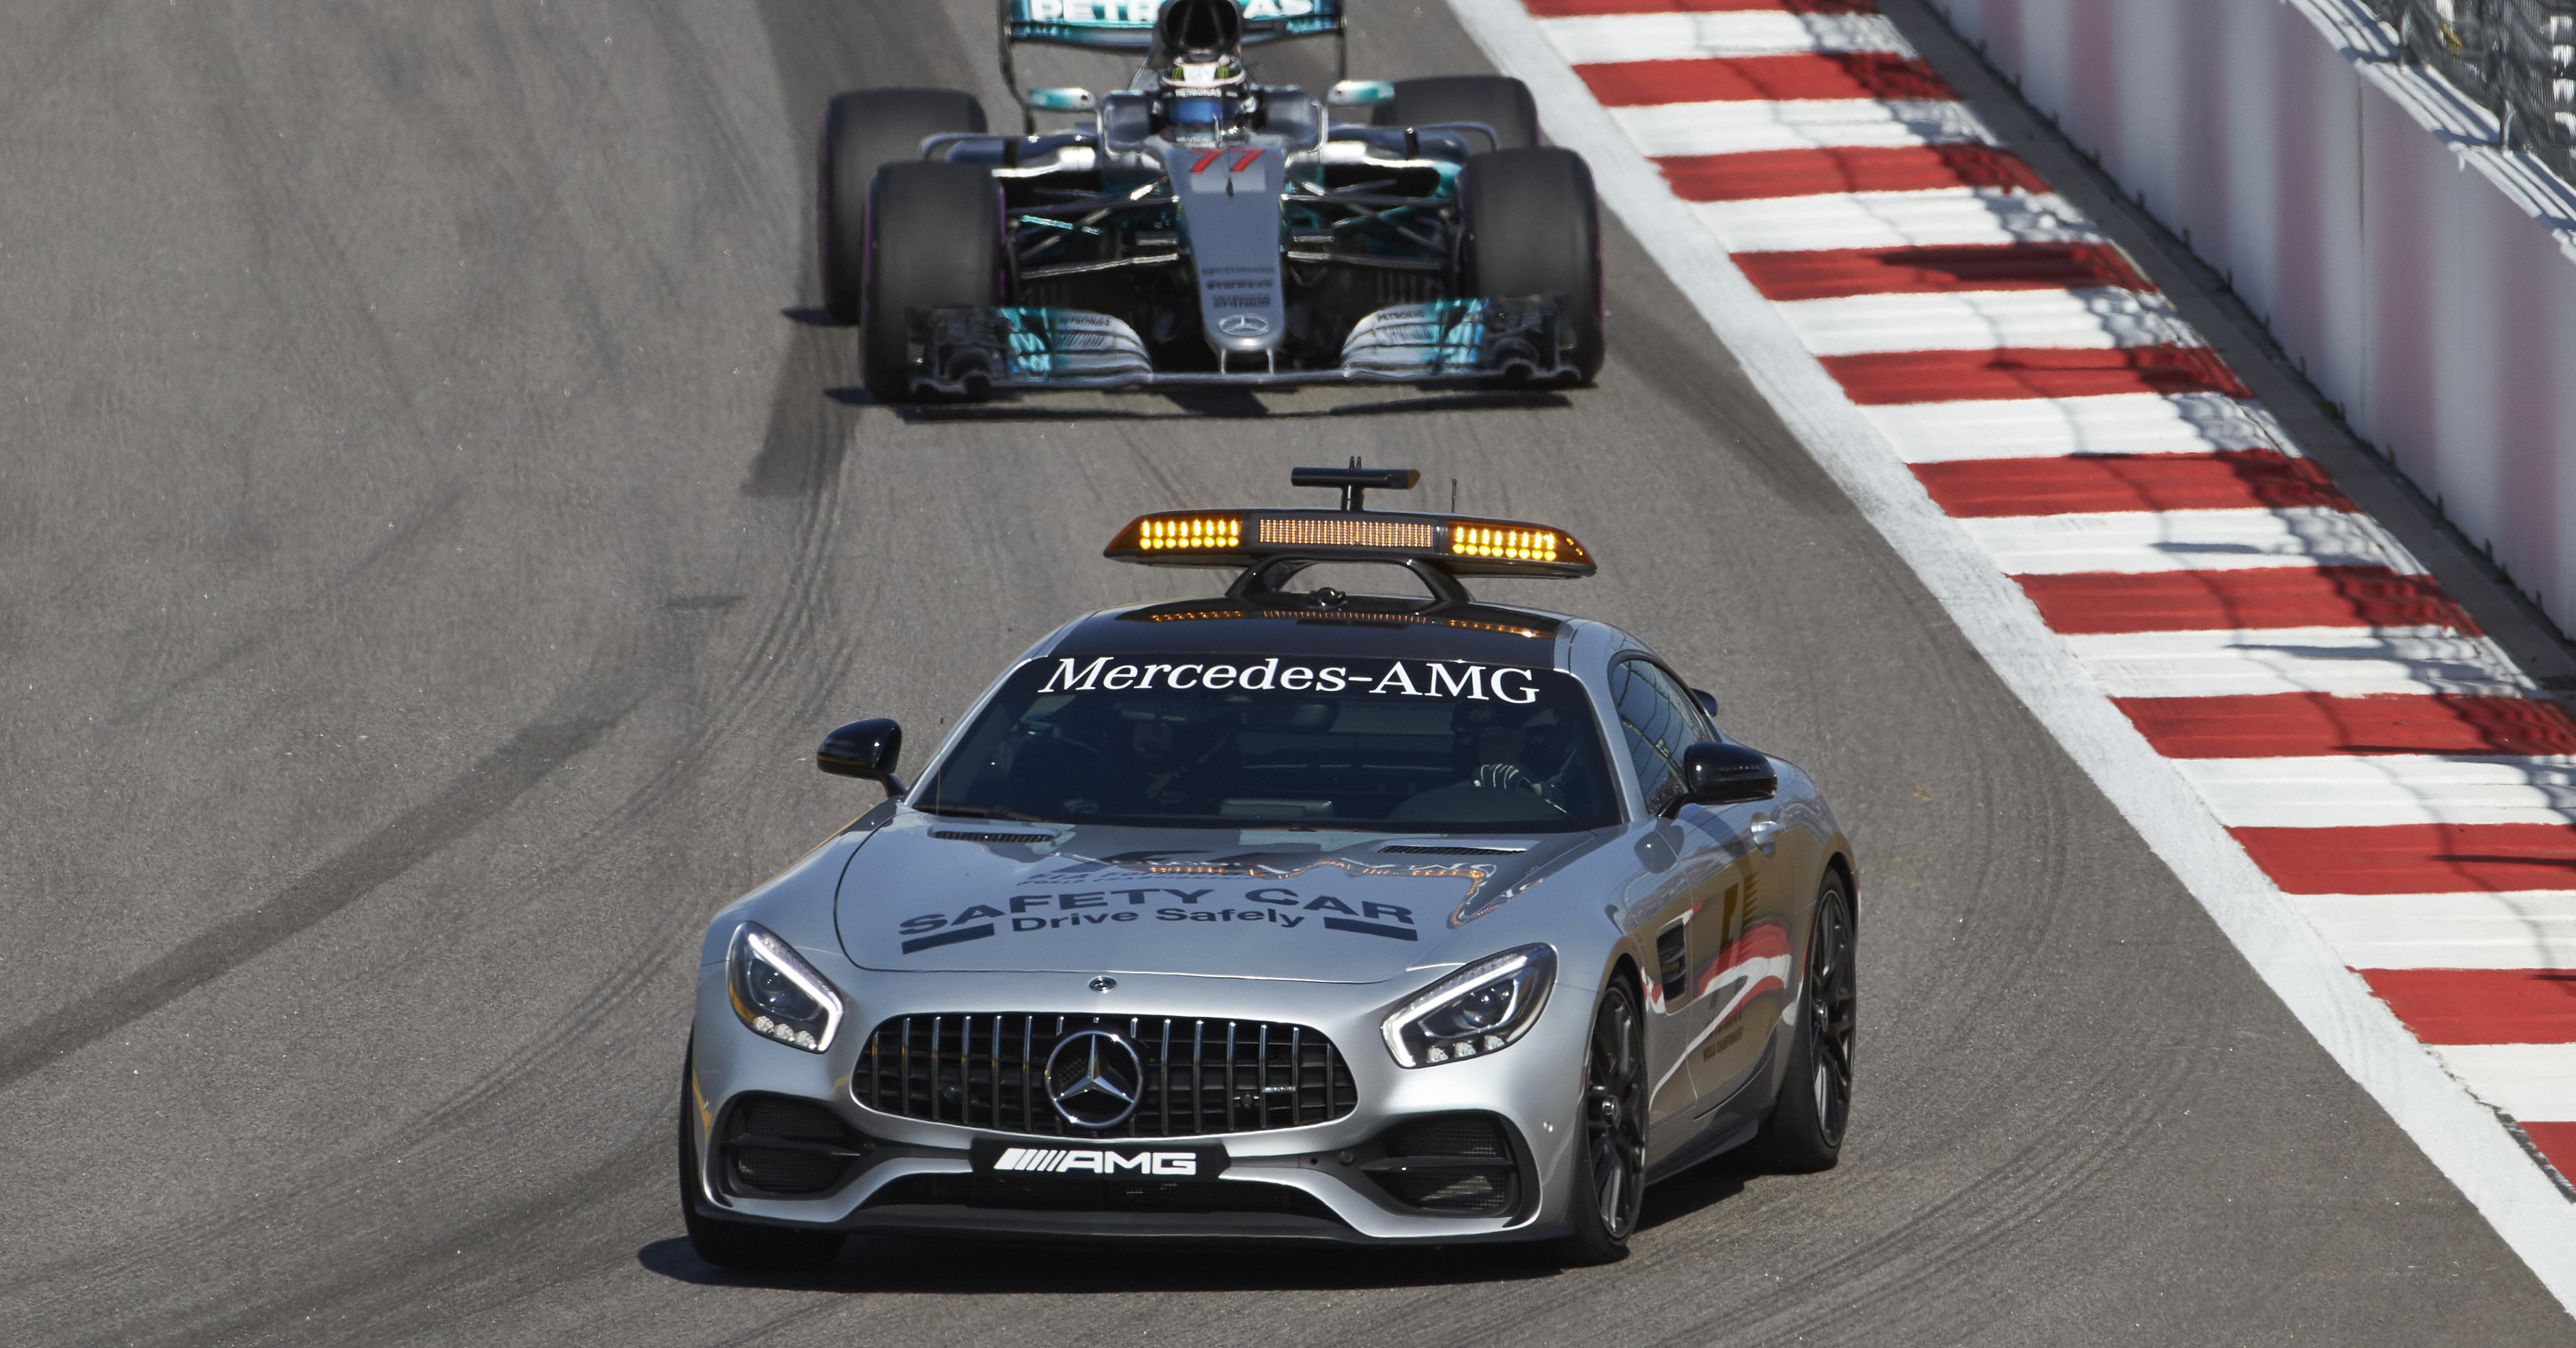 Loan Calculator Formula >> Formula 1 may use driverless safety cars in the future